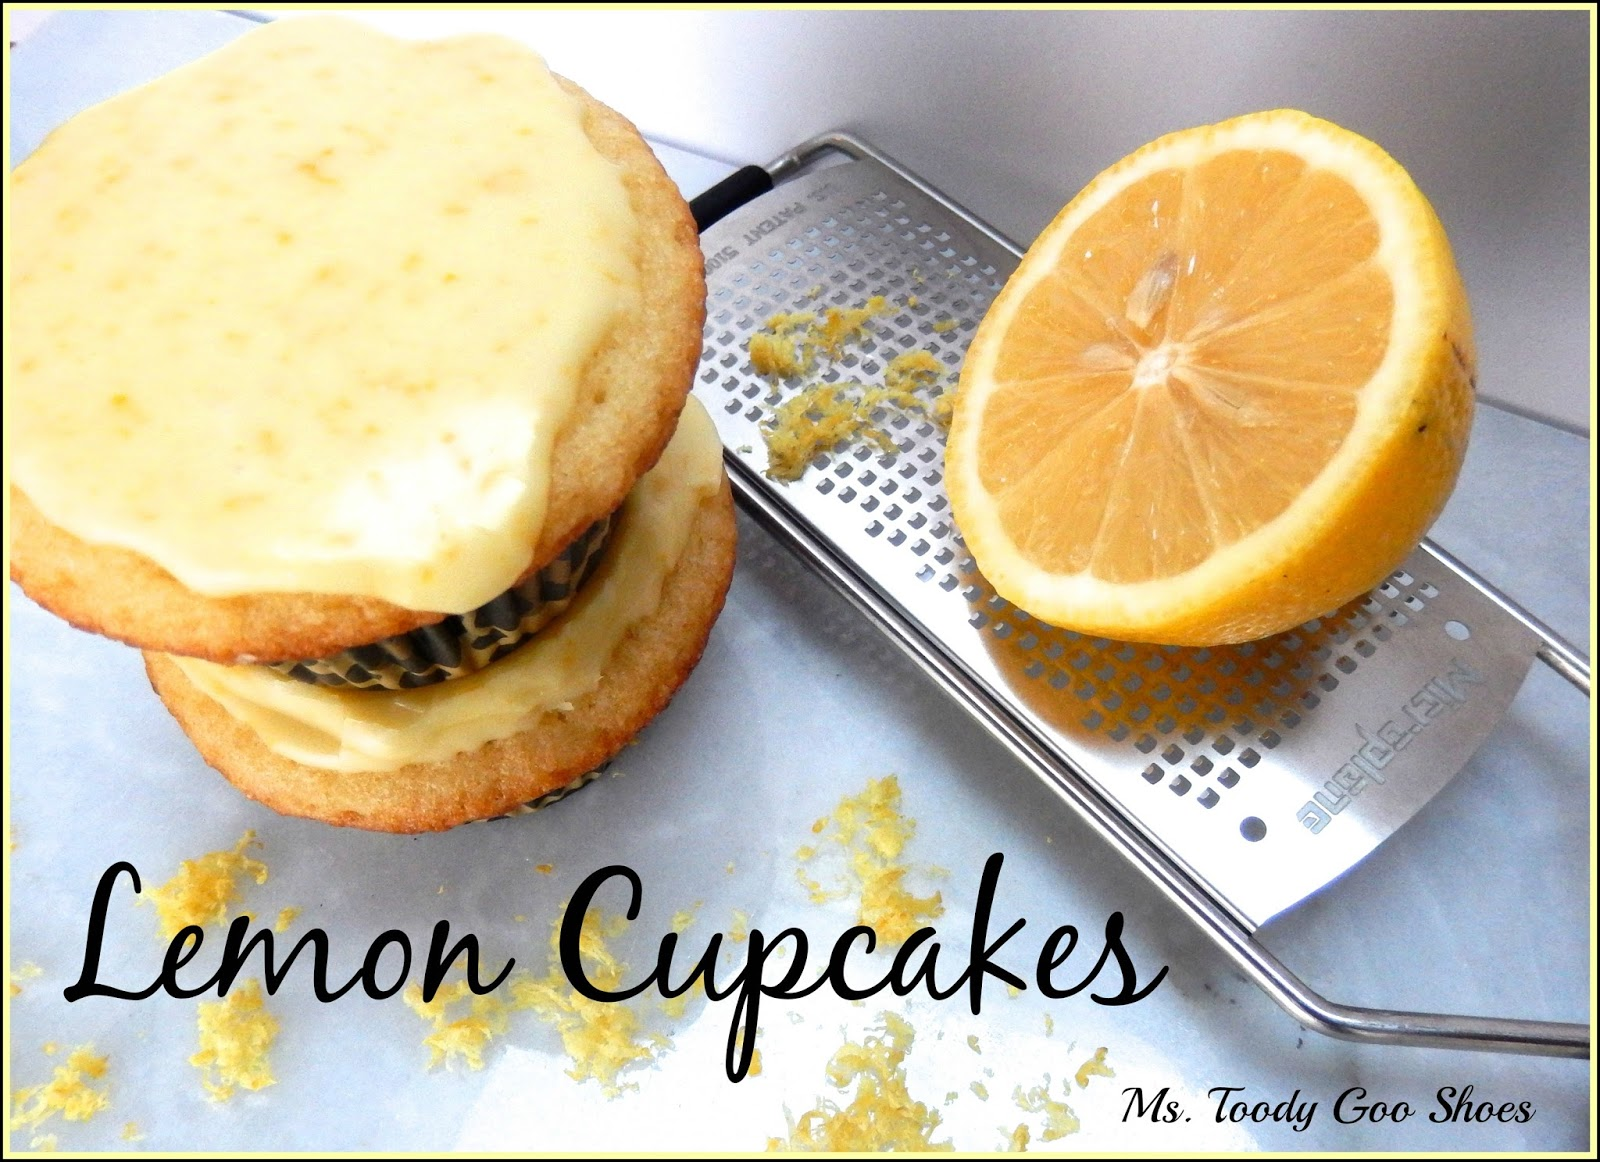 Lemon Cupcakes from Flat Belly Diet Cookbook- Ms. Toody Goo Shoes #FlatBellyCookbook